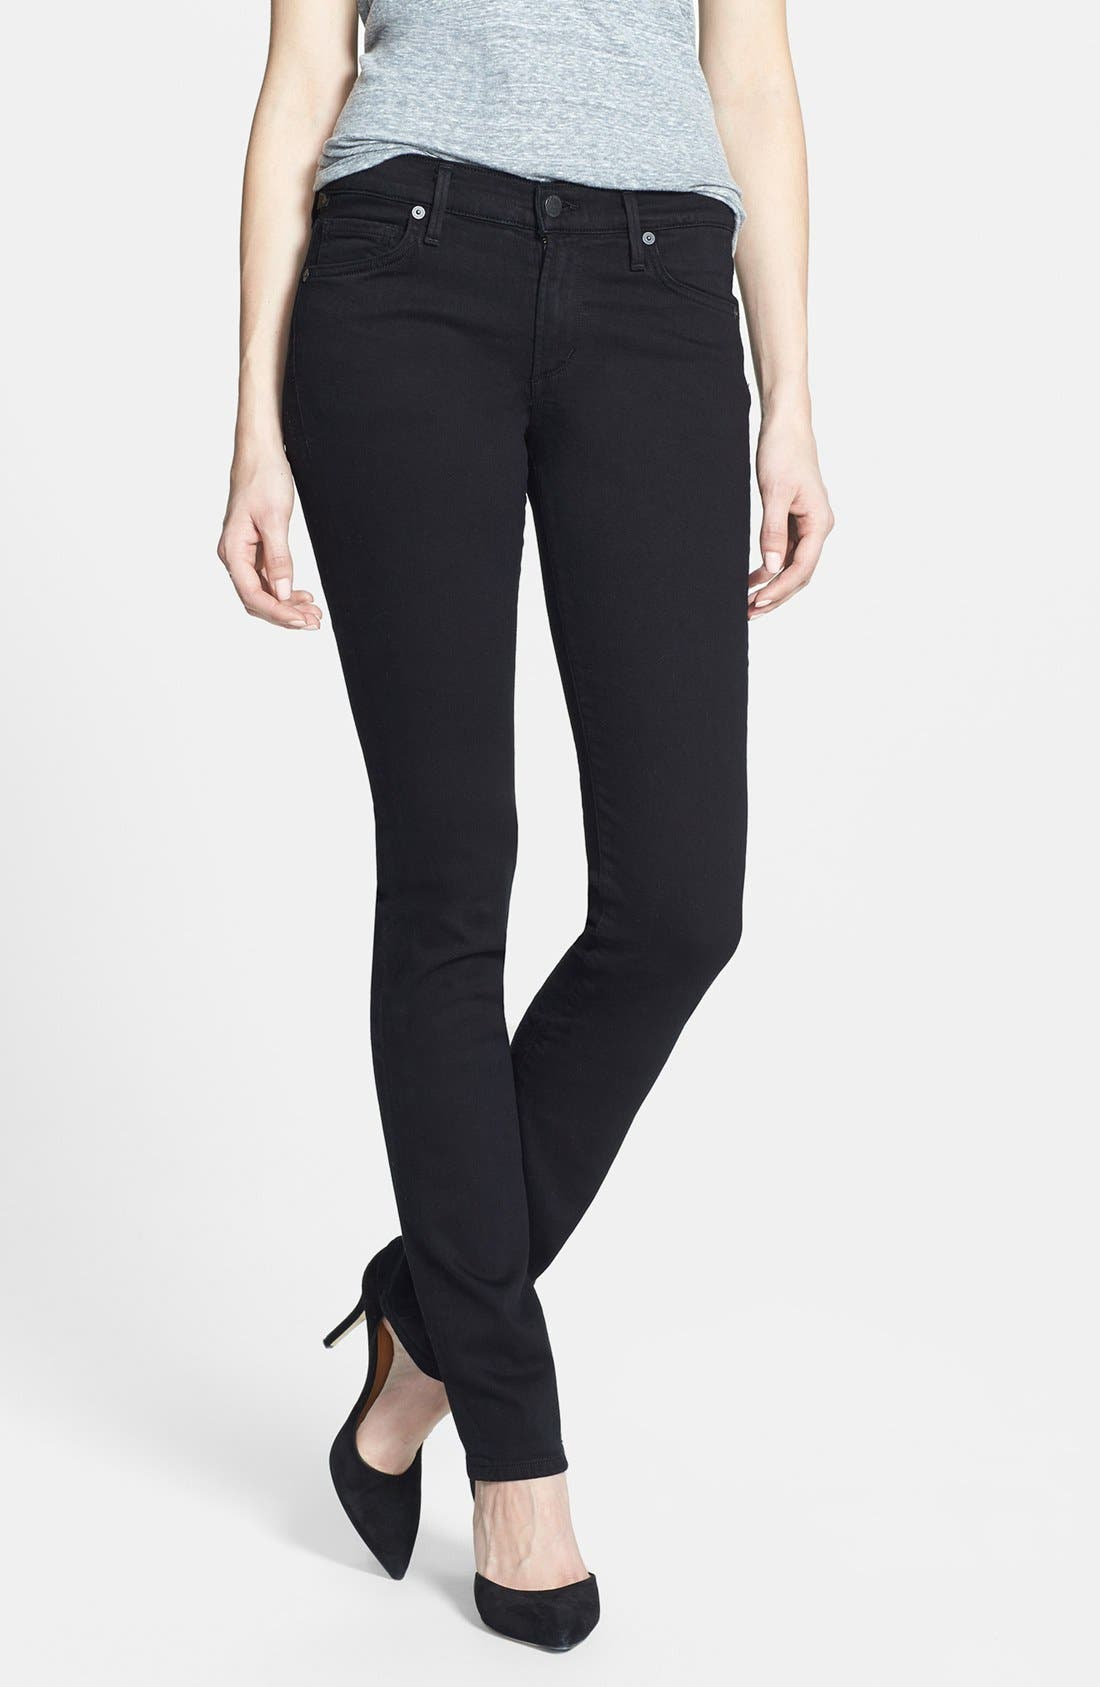 Main Image - Citizens of Humanity 'Ava' Straight Leg Jeans (Tuxedo)